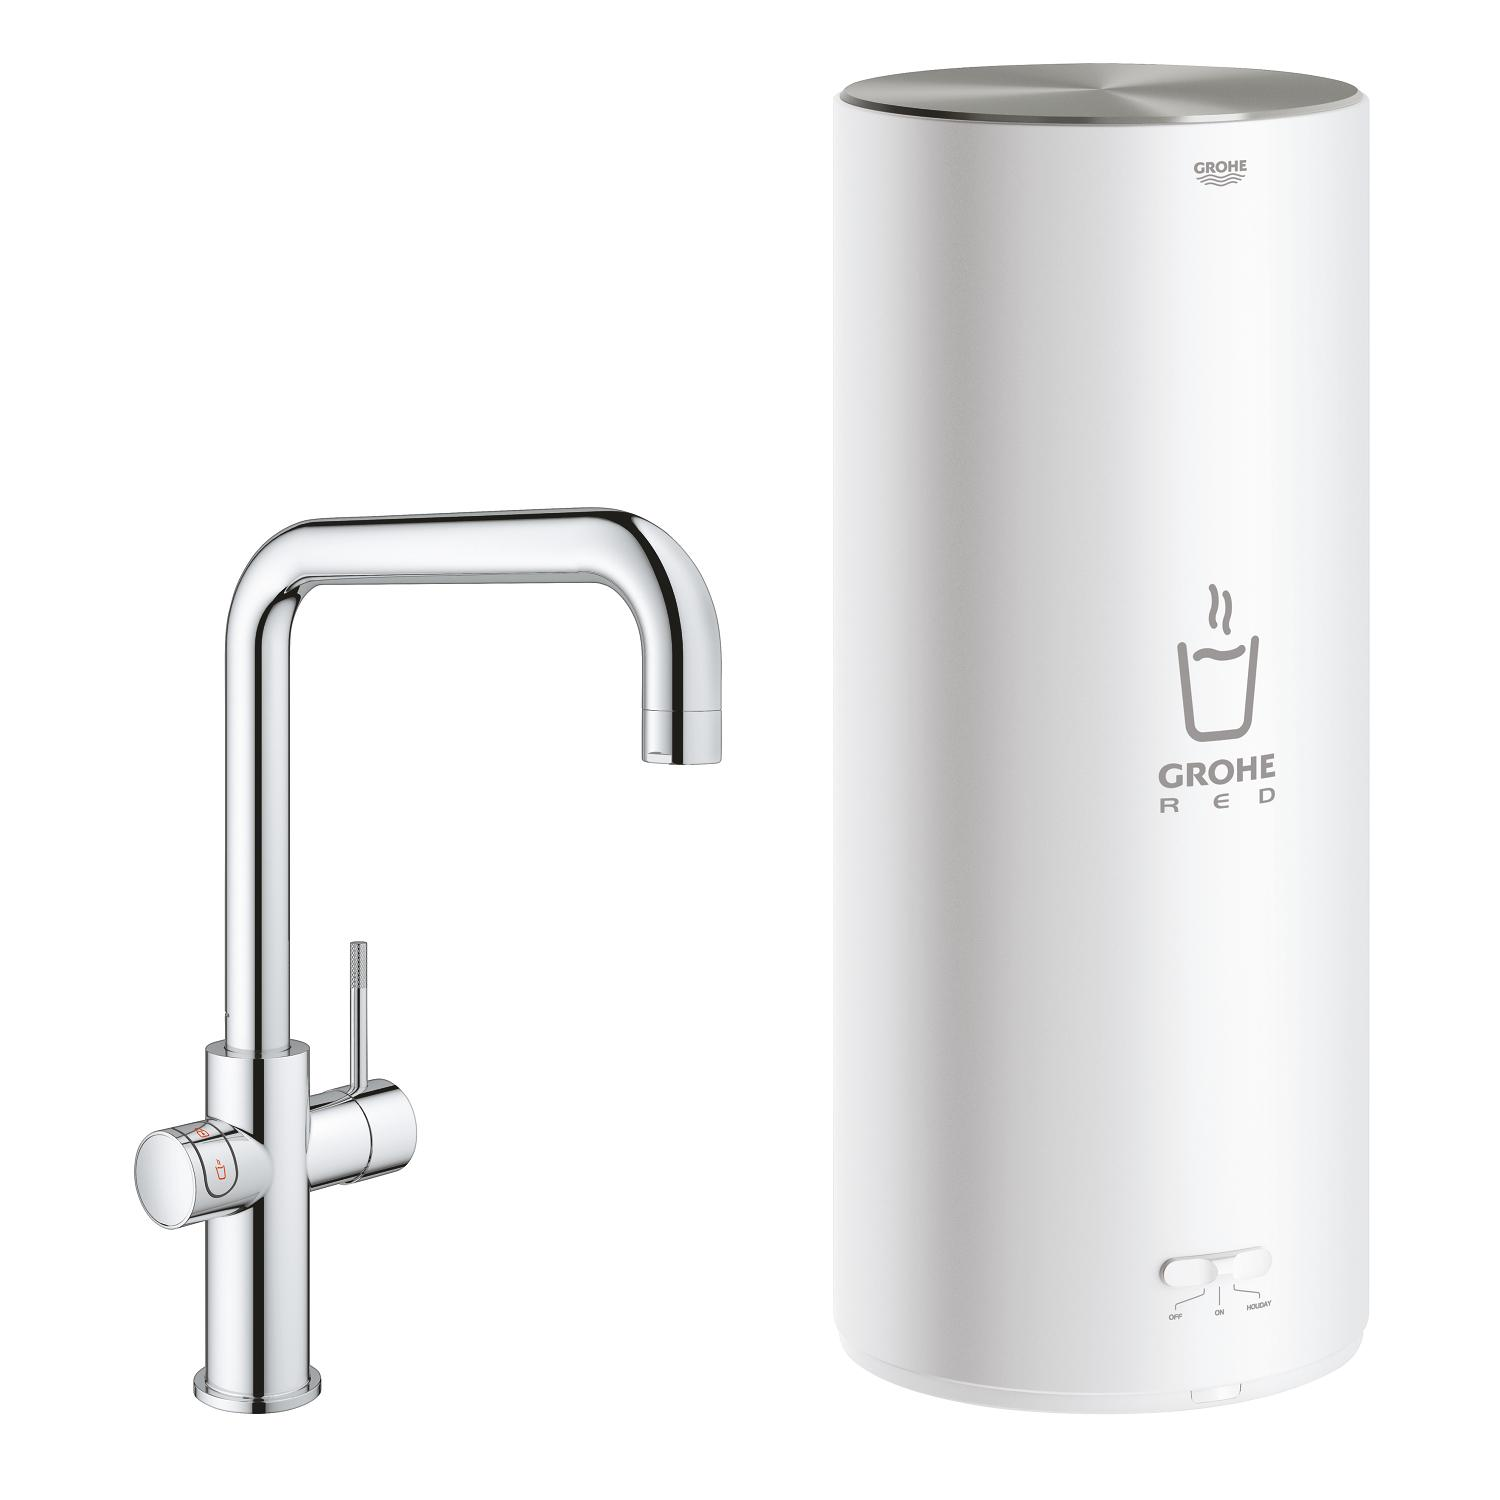 Red Duo keukenmengkraan chroom m.U-uitloop+combiboiler Grohe